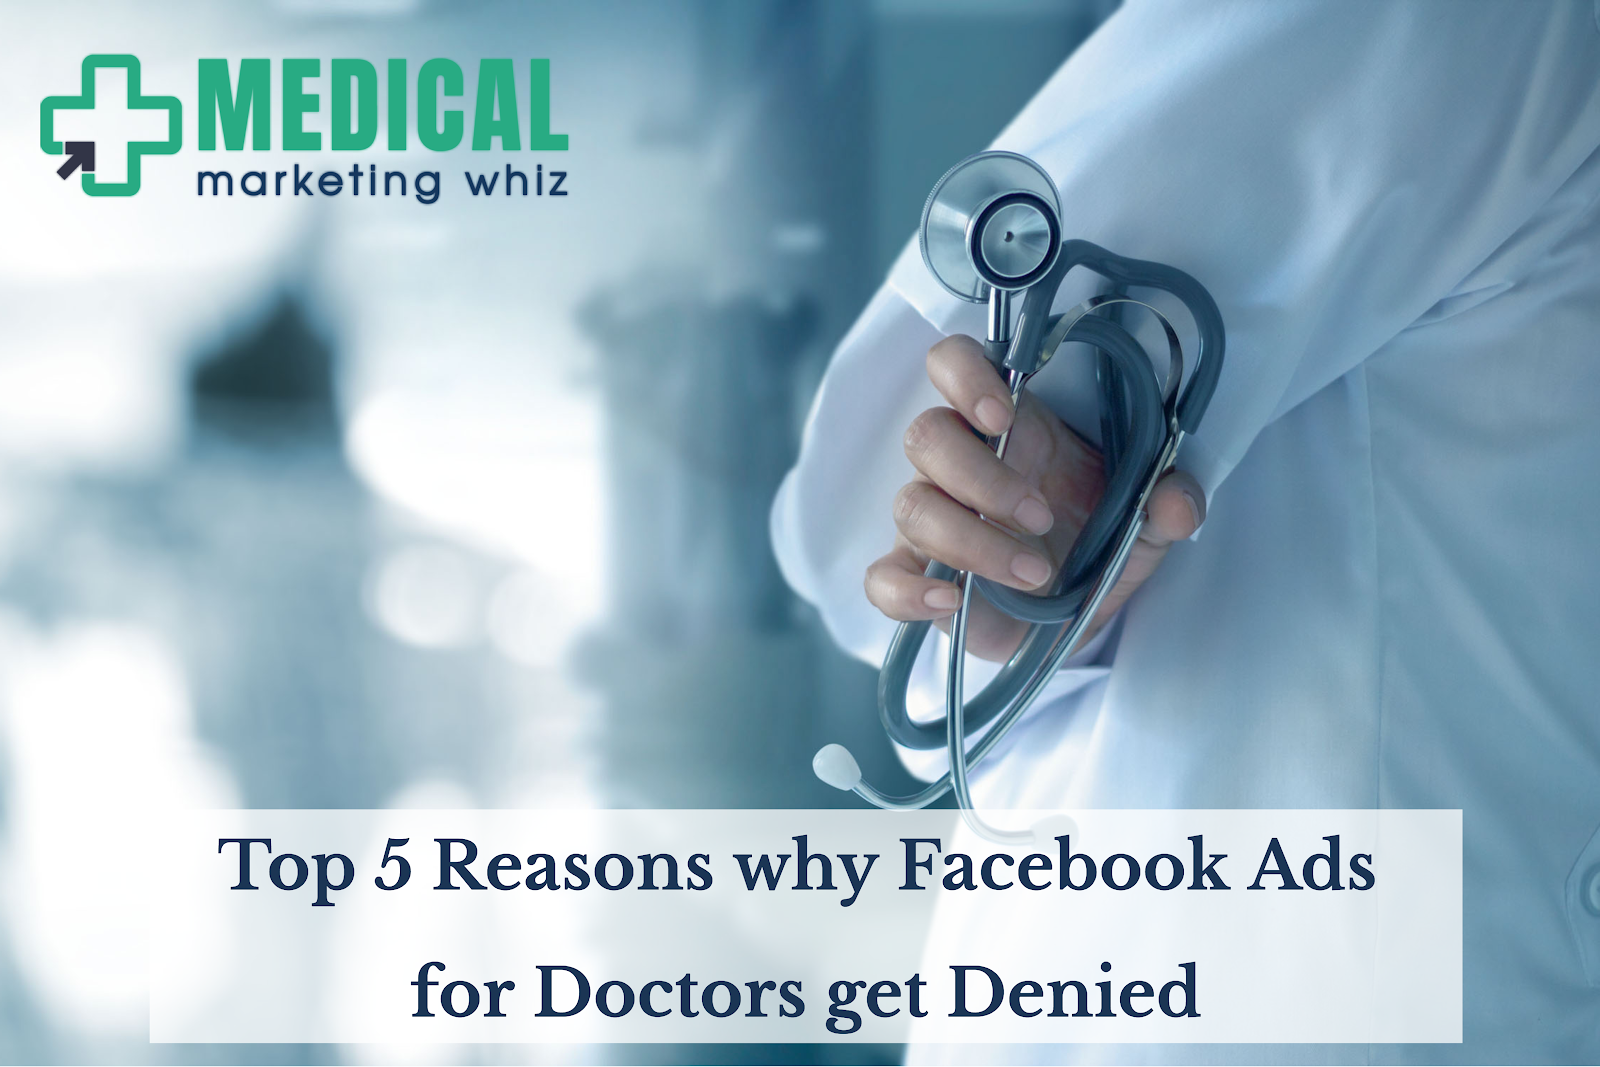 Top 5 Reasons Doctors' Facebook Ads Get Denied